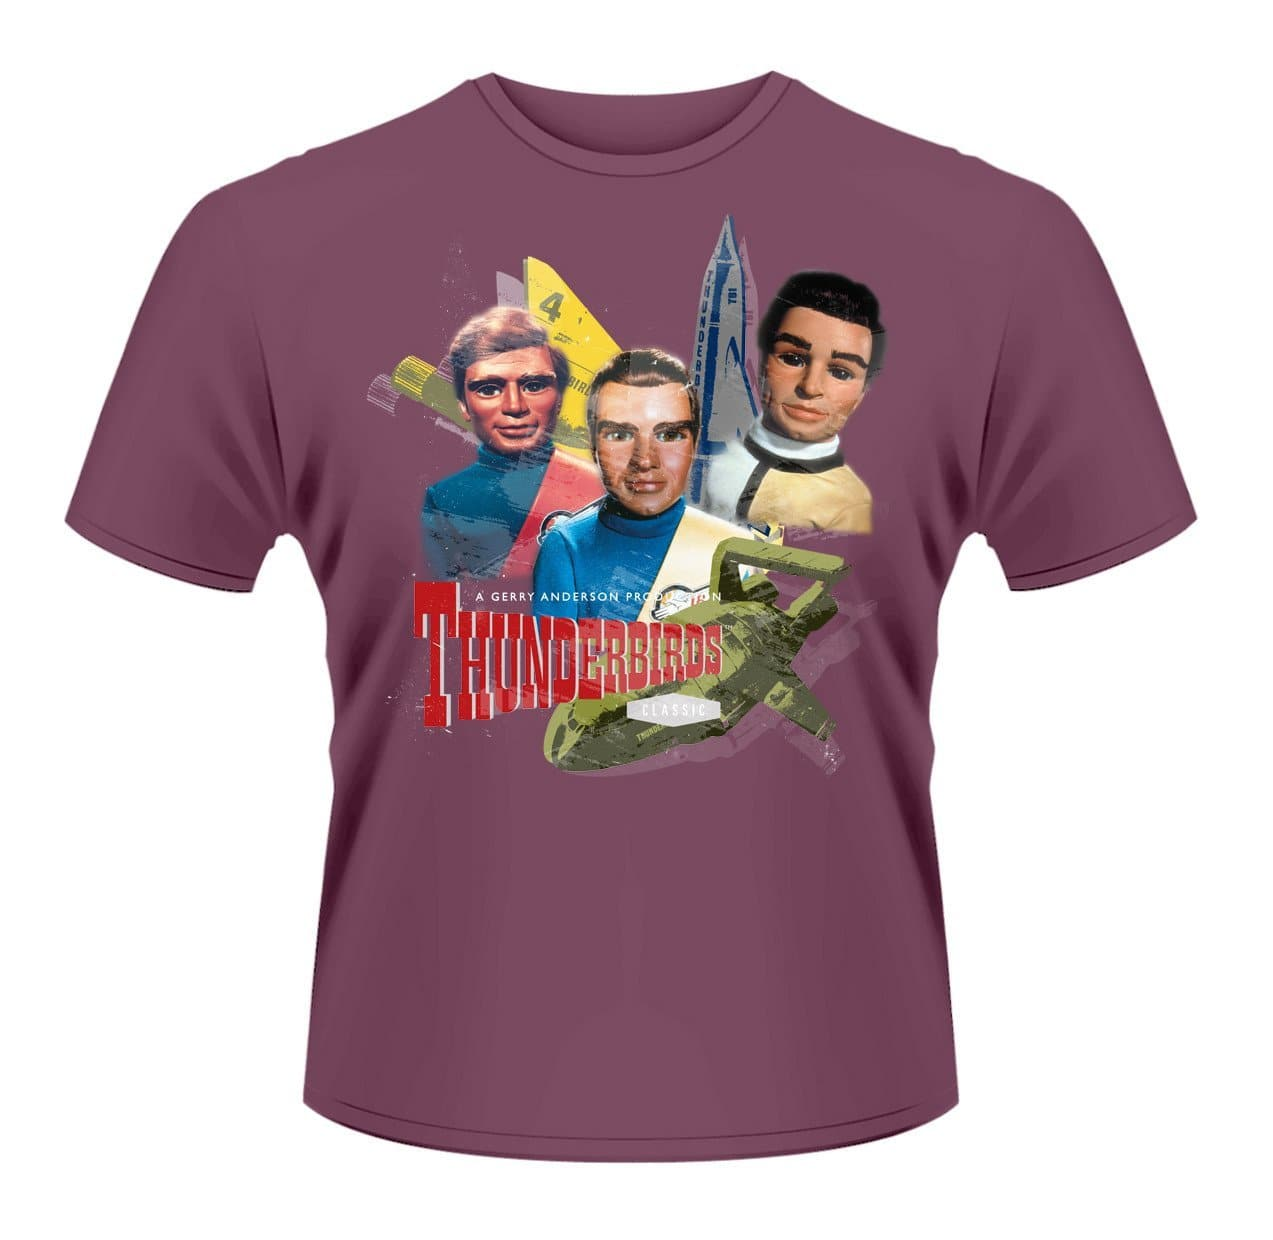 Tracy Brothers - Thunderbirds T-shirt - Gerry Anderson Official - 1